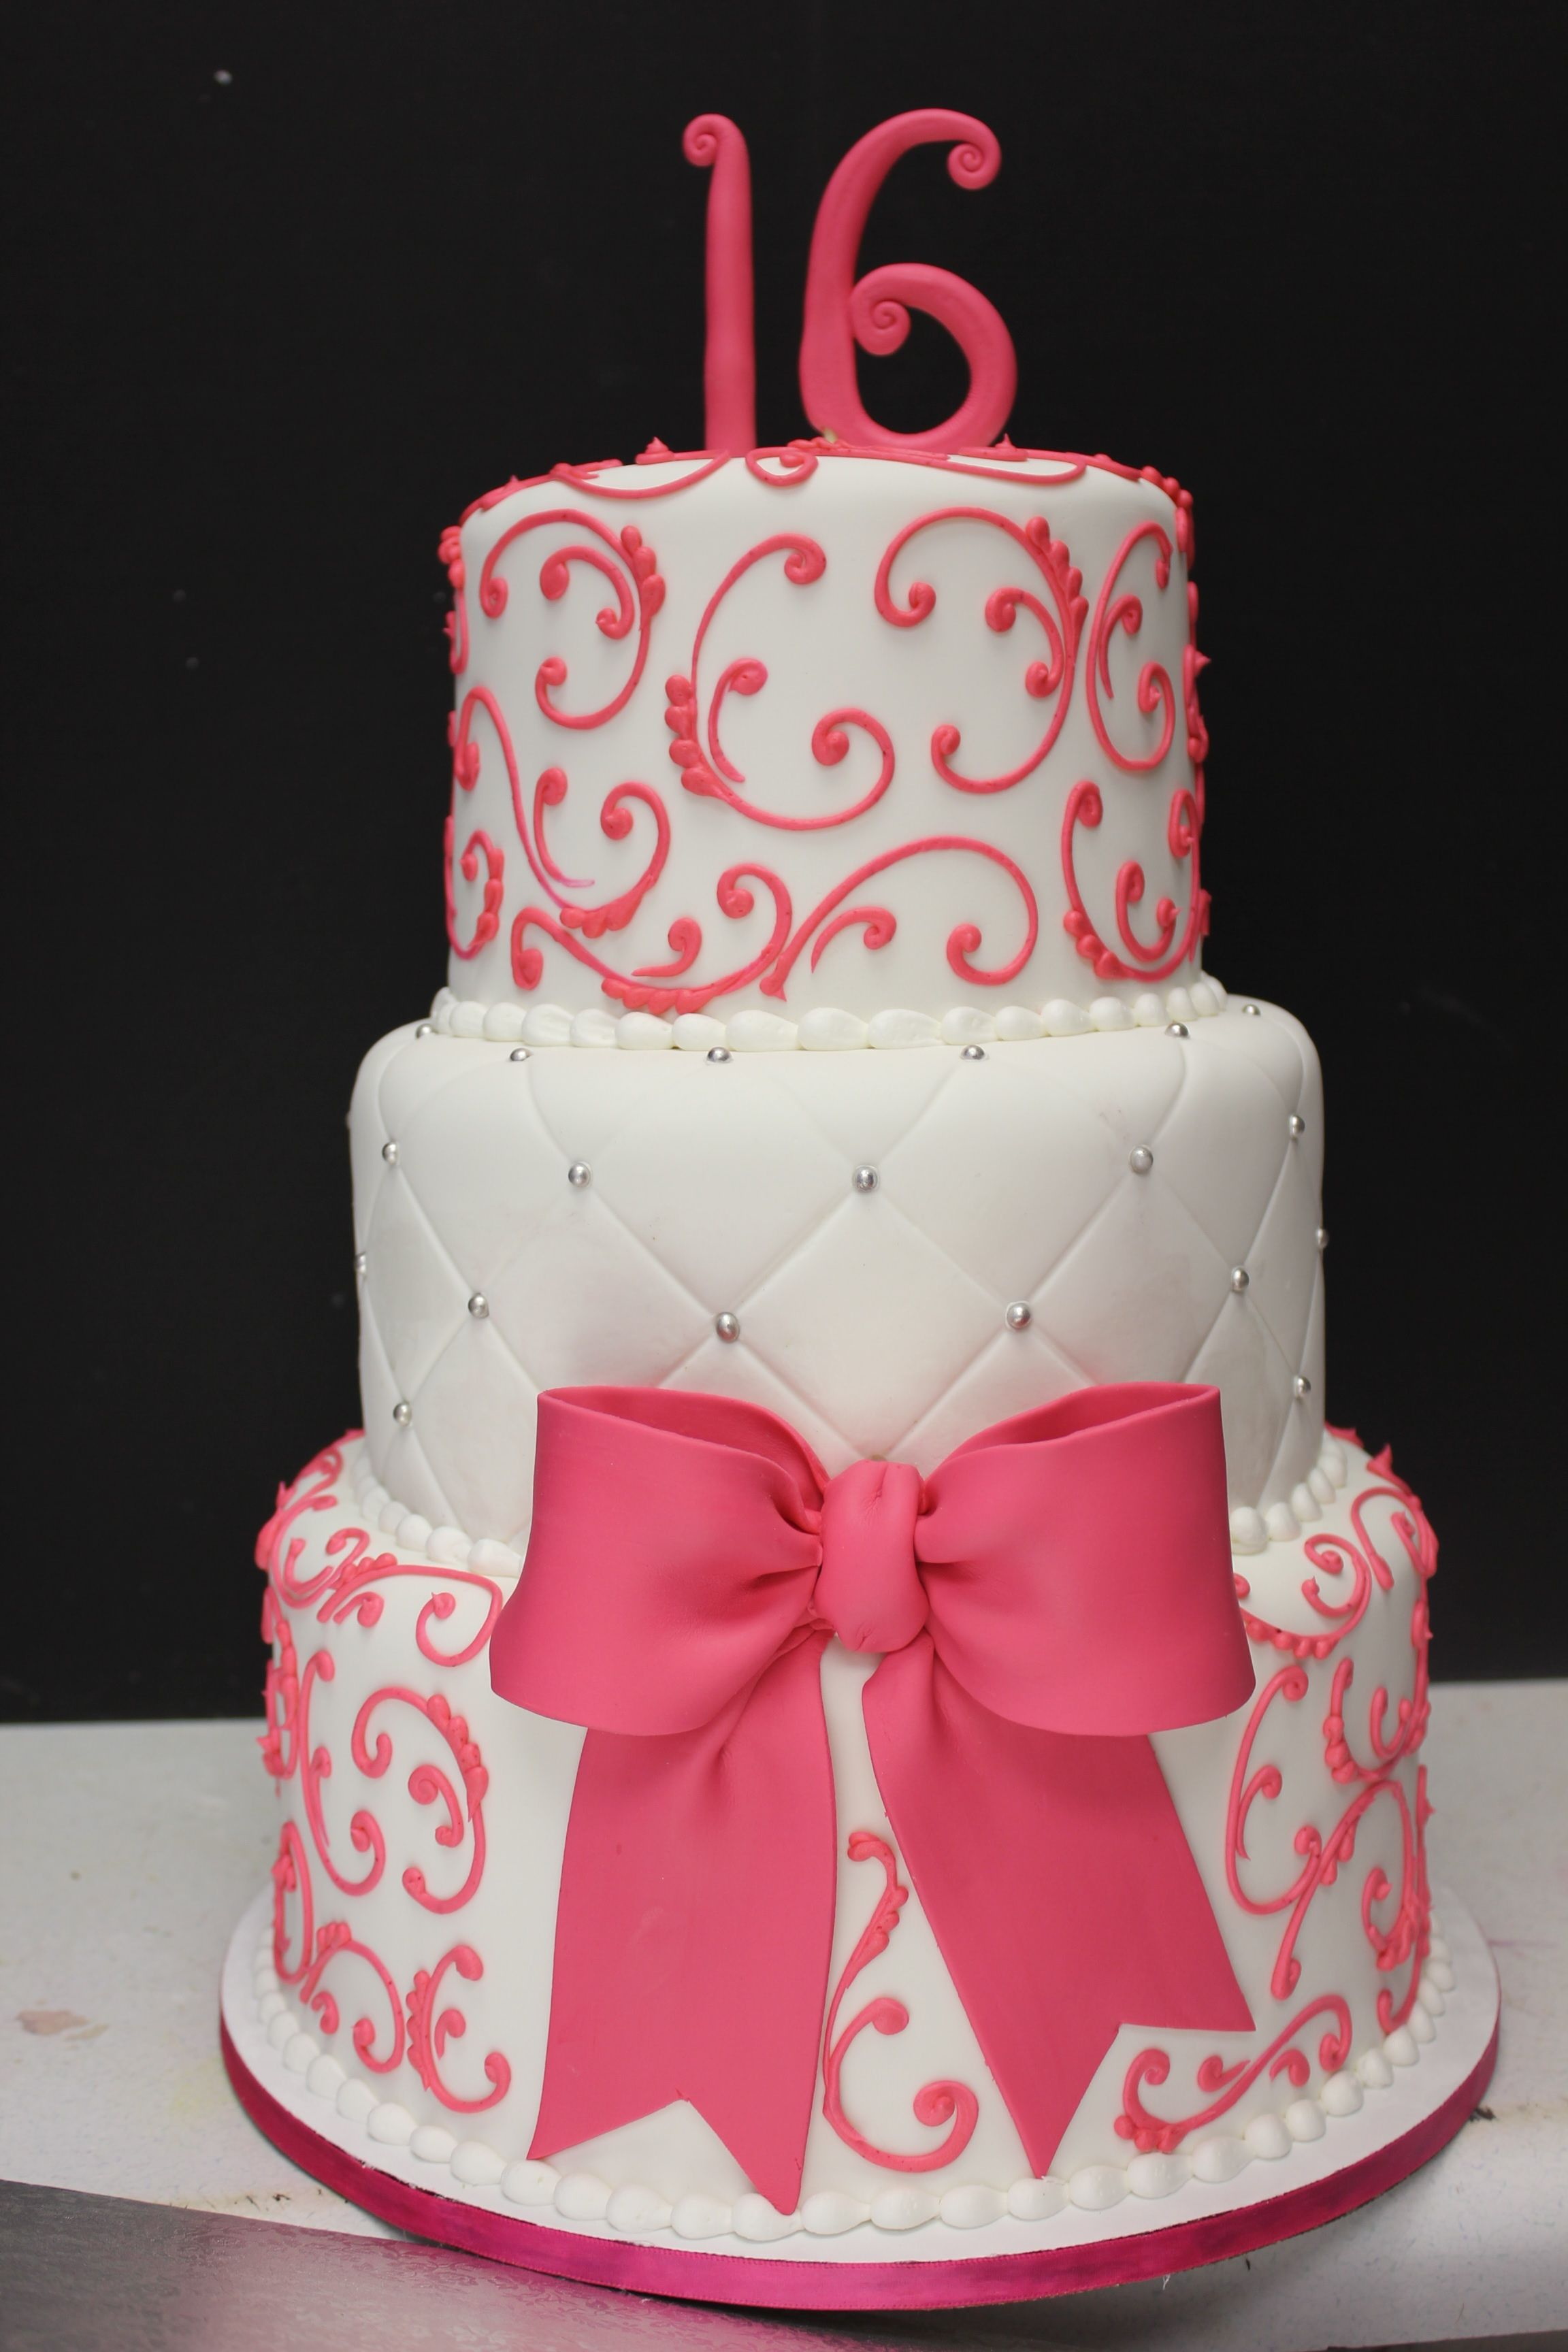 Sweet 16 Birthday Cake Sweet 16 Cake Maybe In Red And Black And Gold Instead Sweet 16